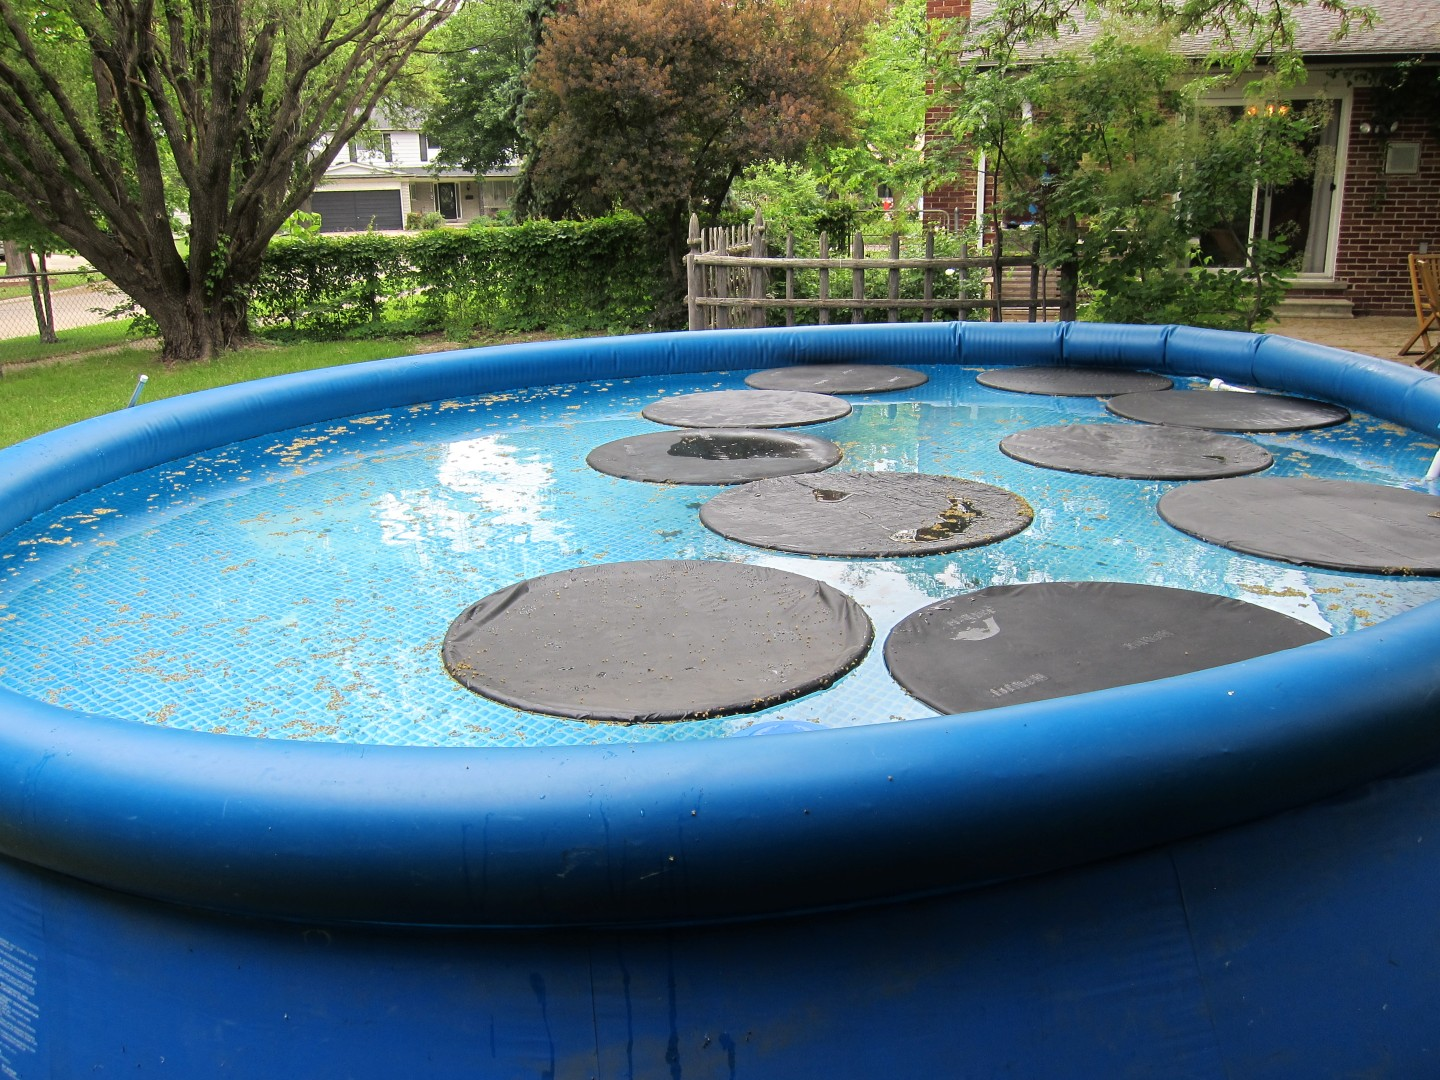 More ideas about diy solar pool heater pool lilly pad solar cover solutioingenieria Image collections